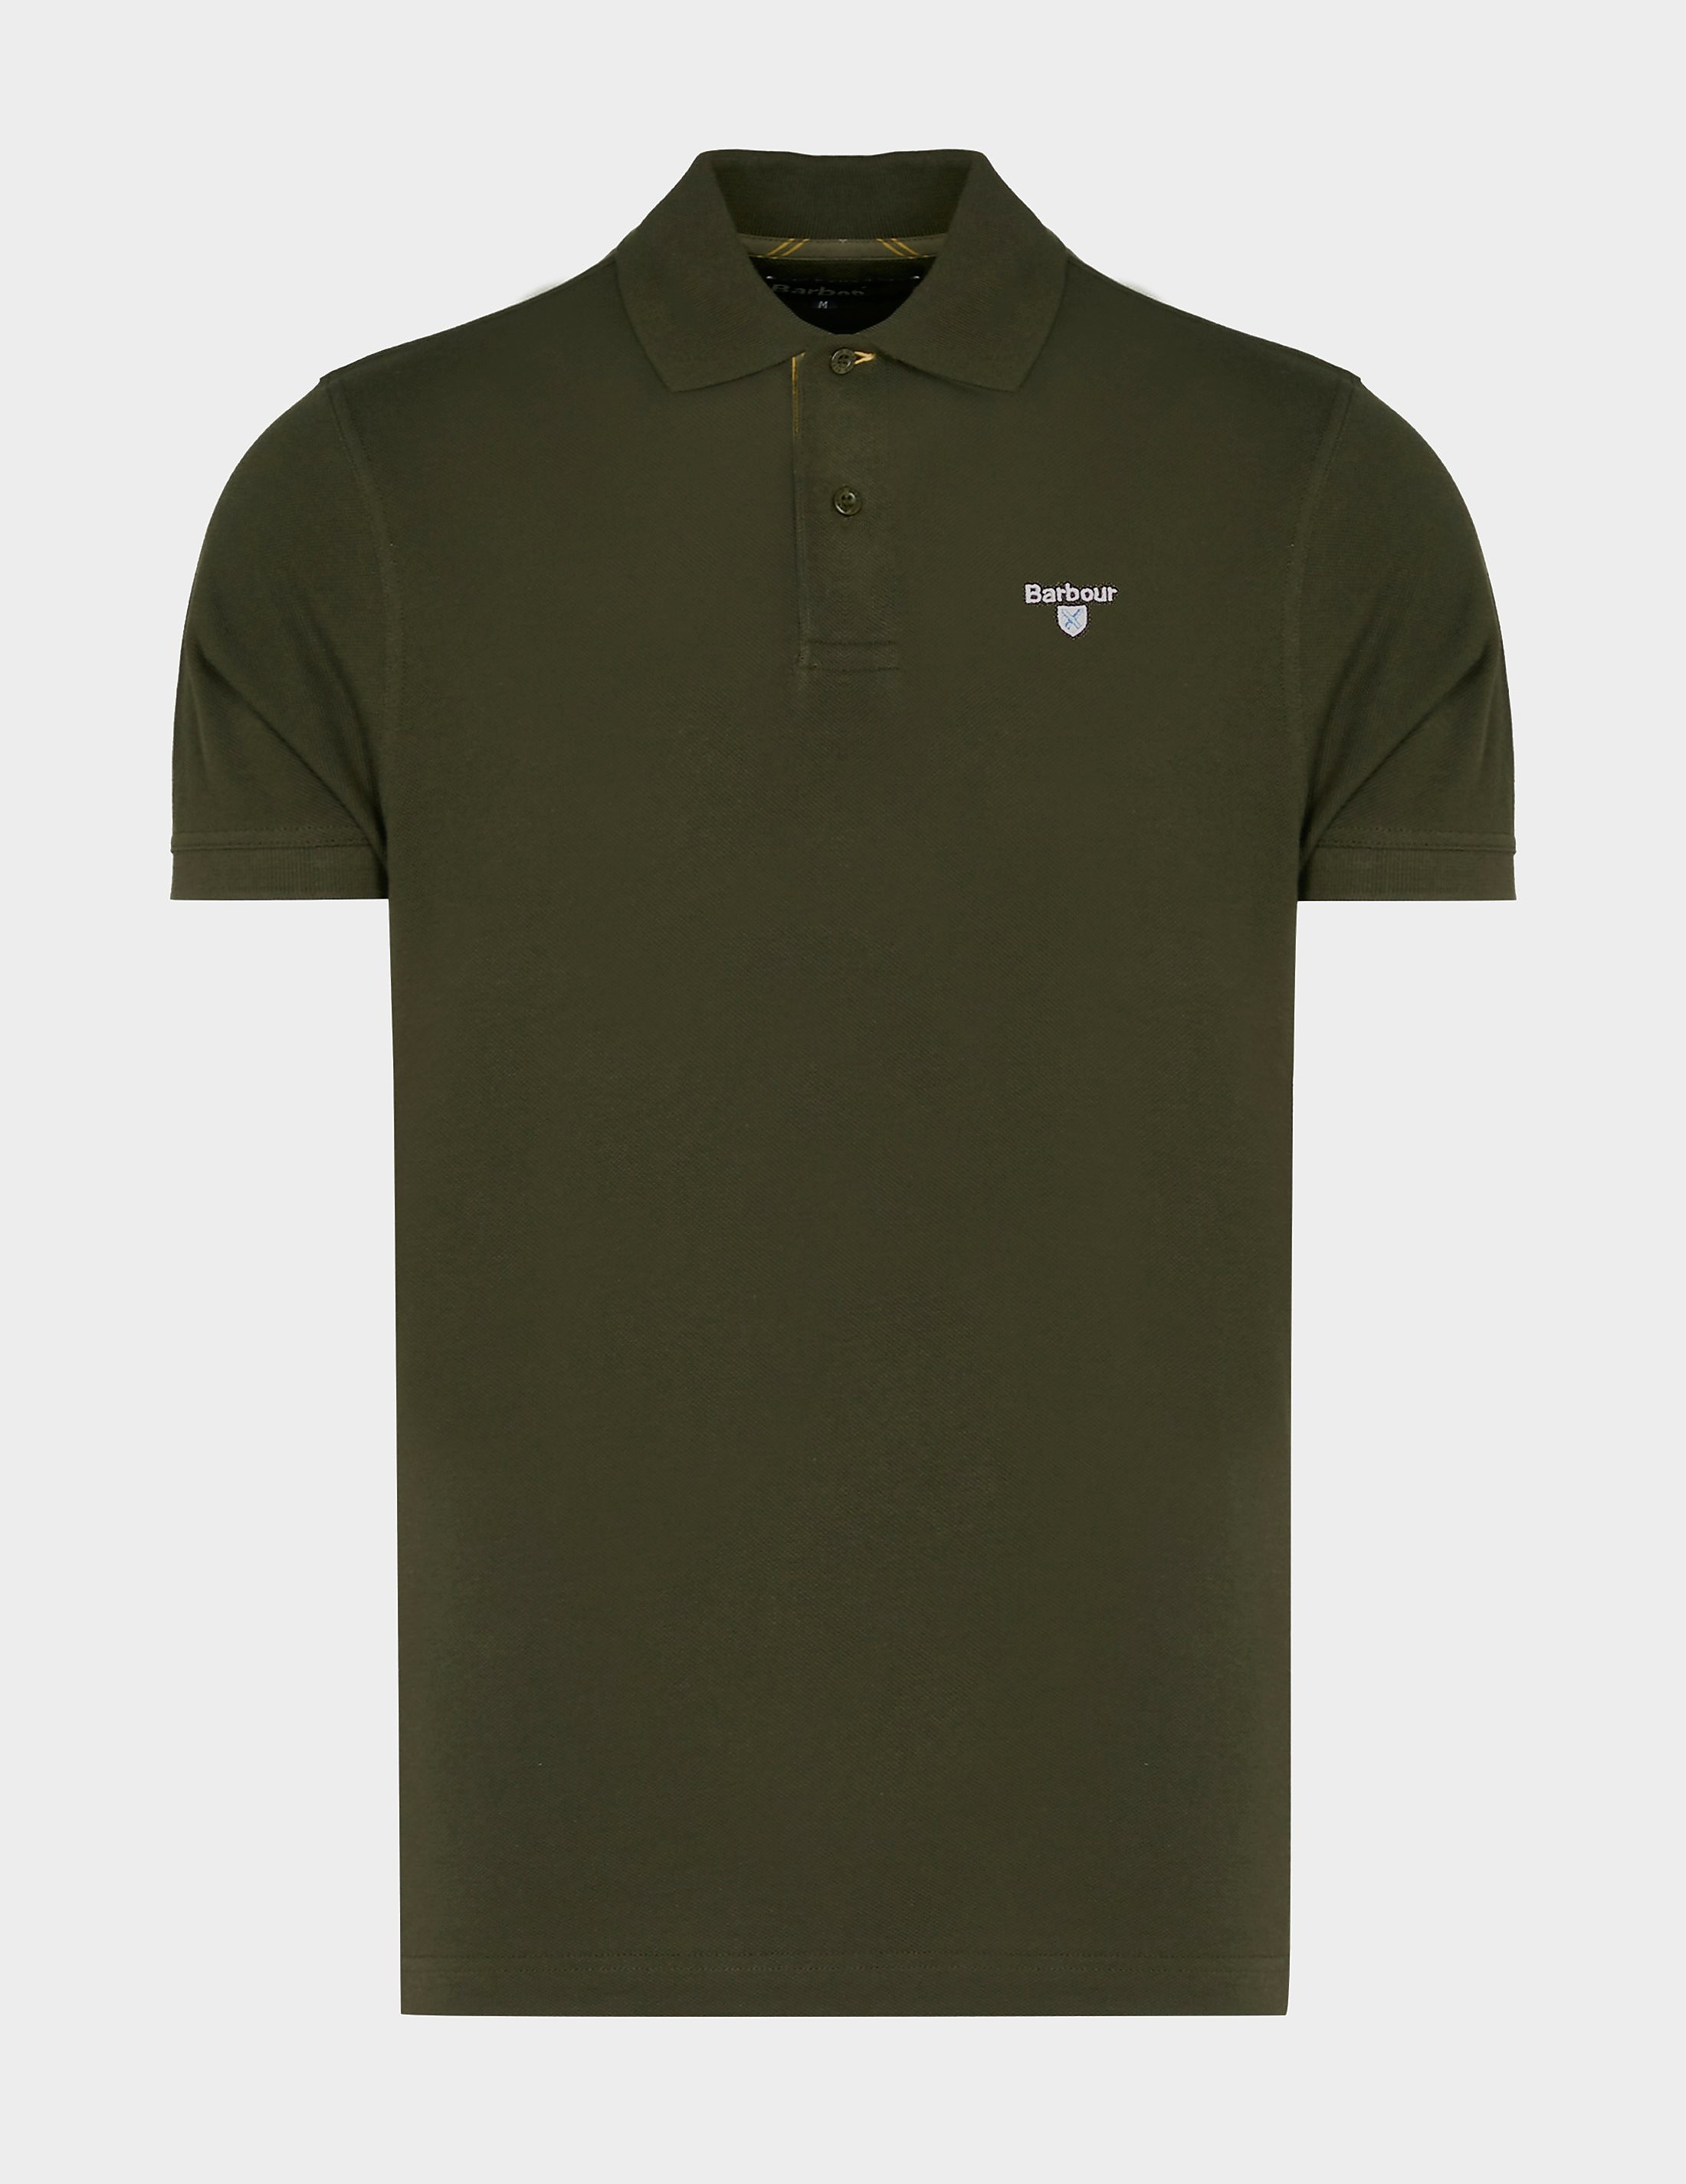 Barbour Tartan Pique Short Sleeve Polo Shirt